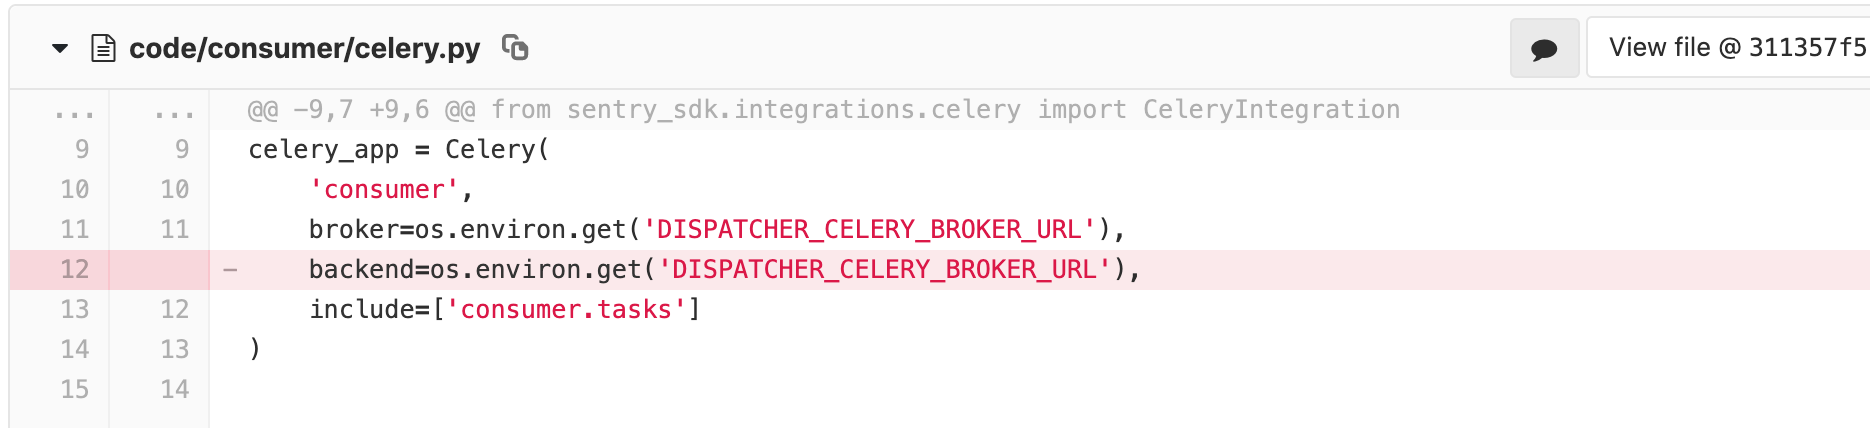 Solving RabbitMQ High CPU/Memory Usages Problem With Celery